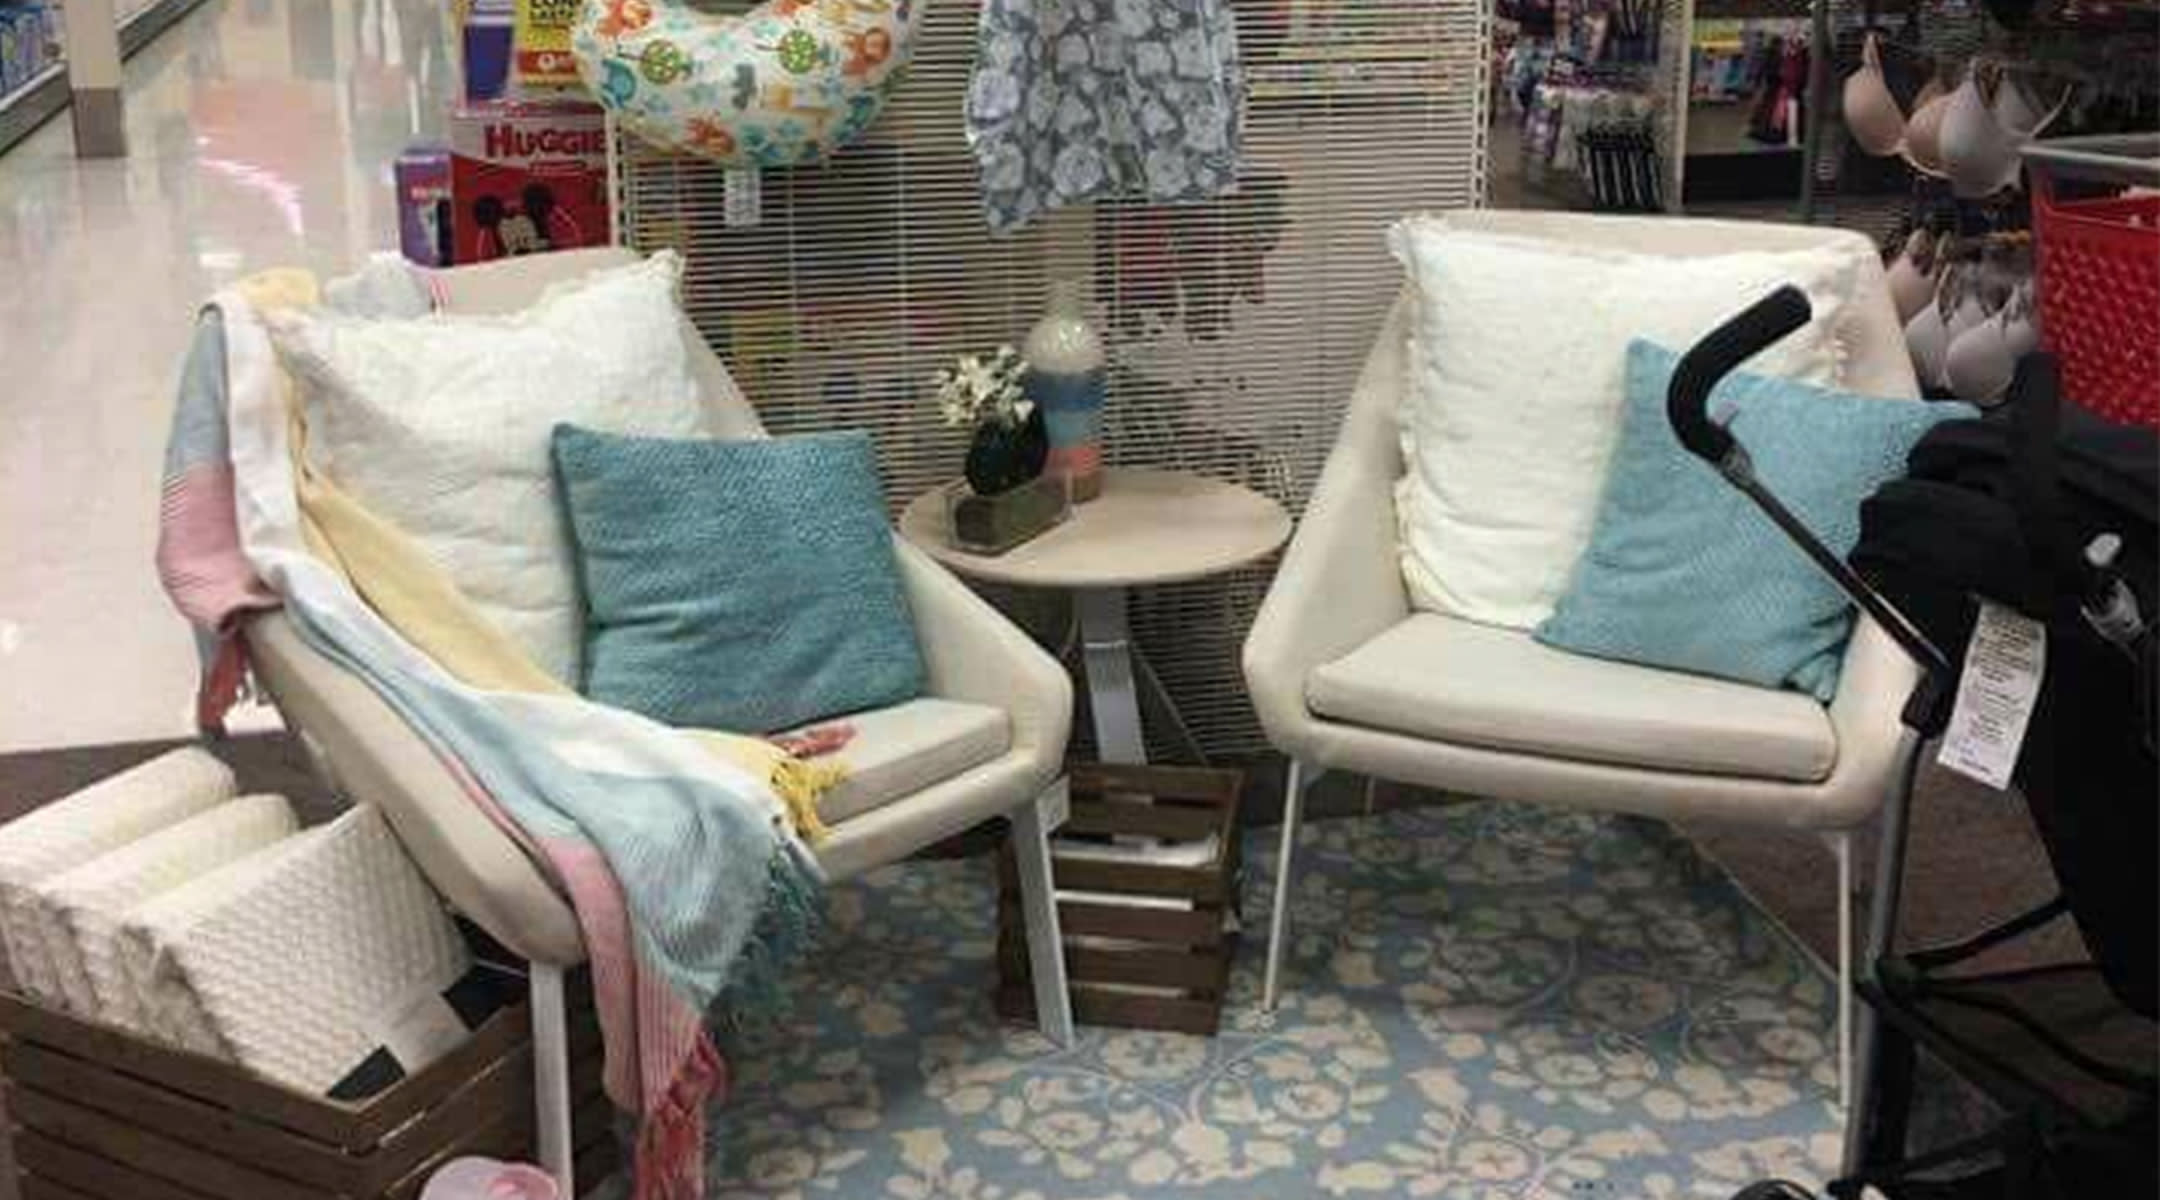 Target Brings Breastfeeding Stations To Select Stores